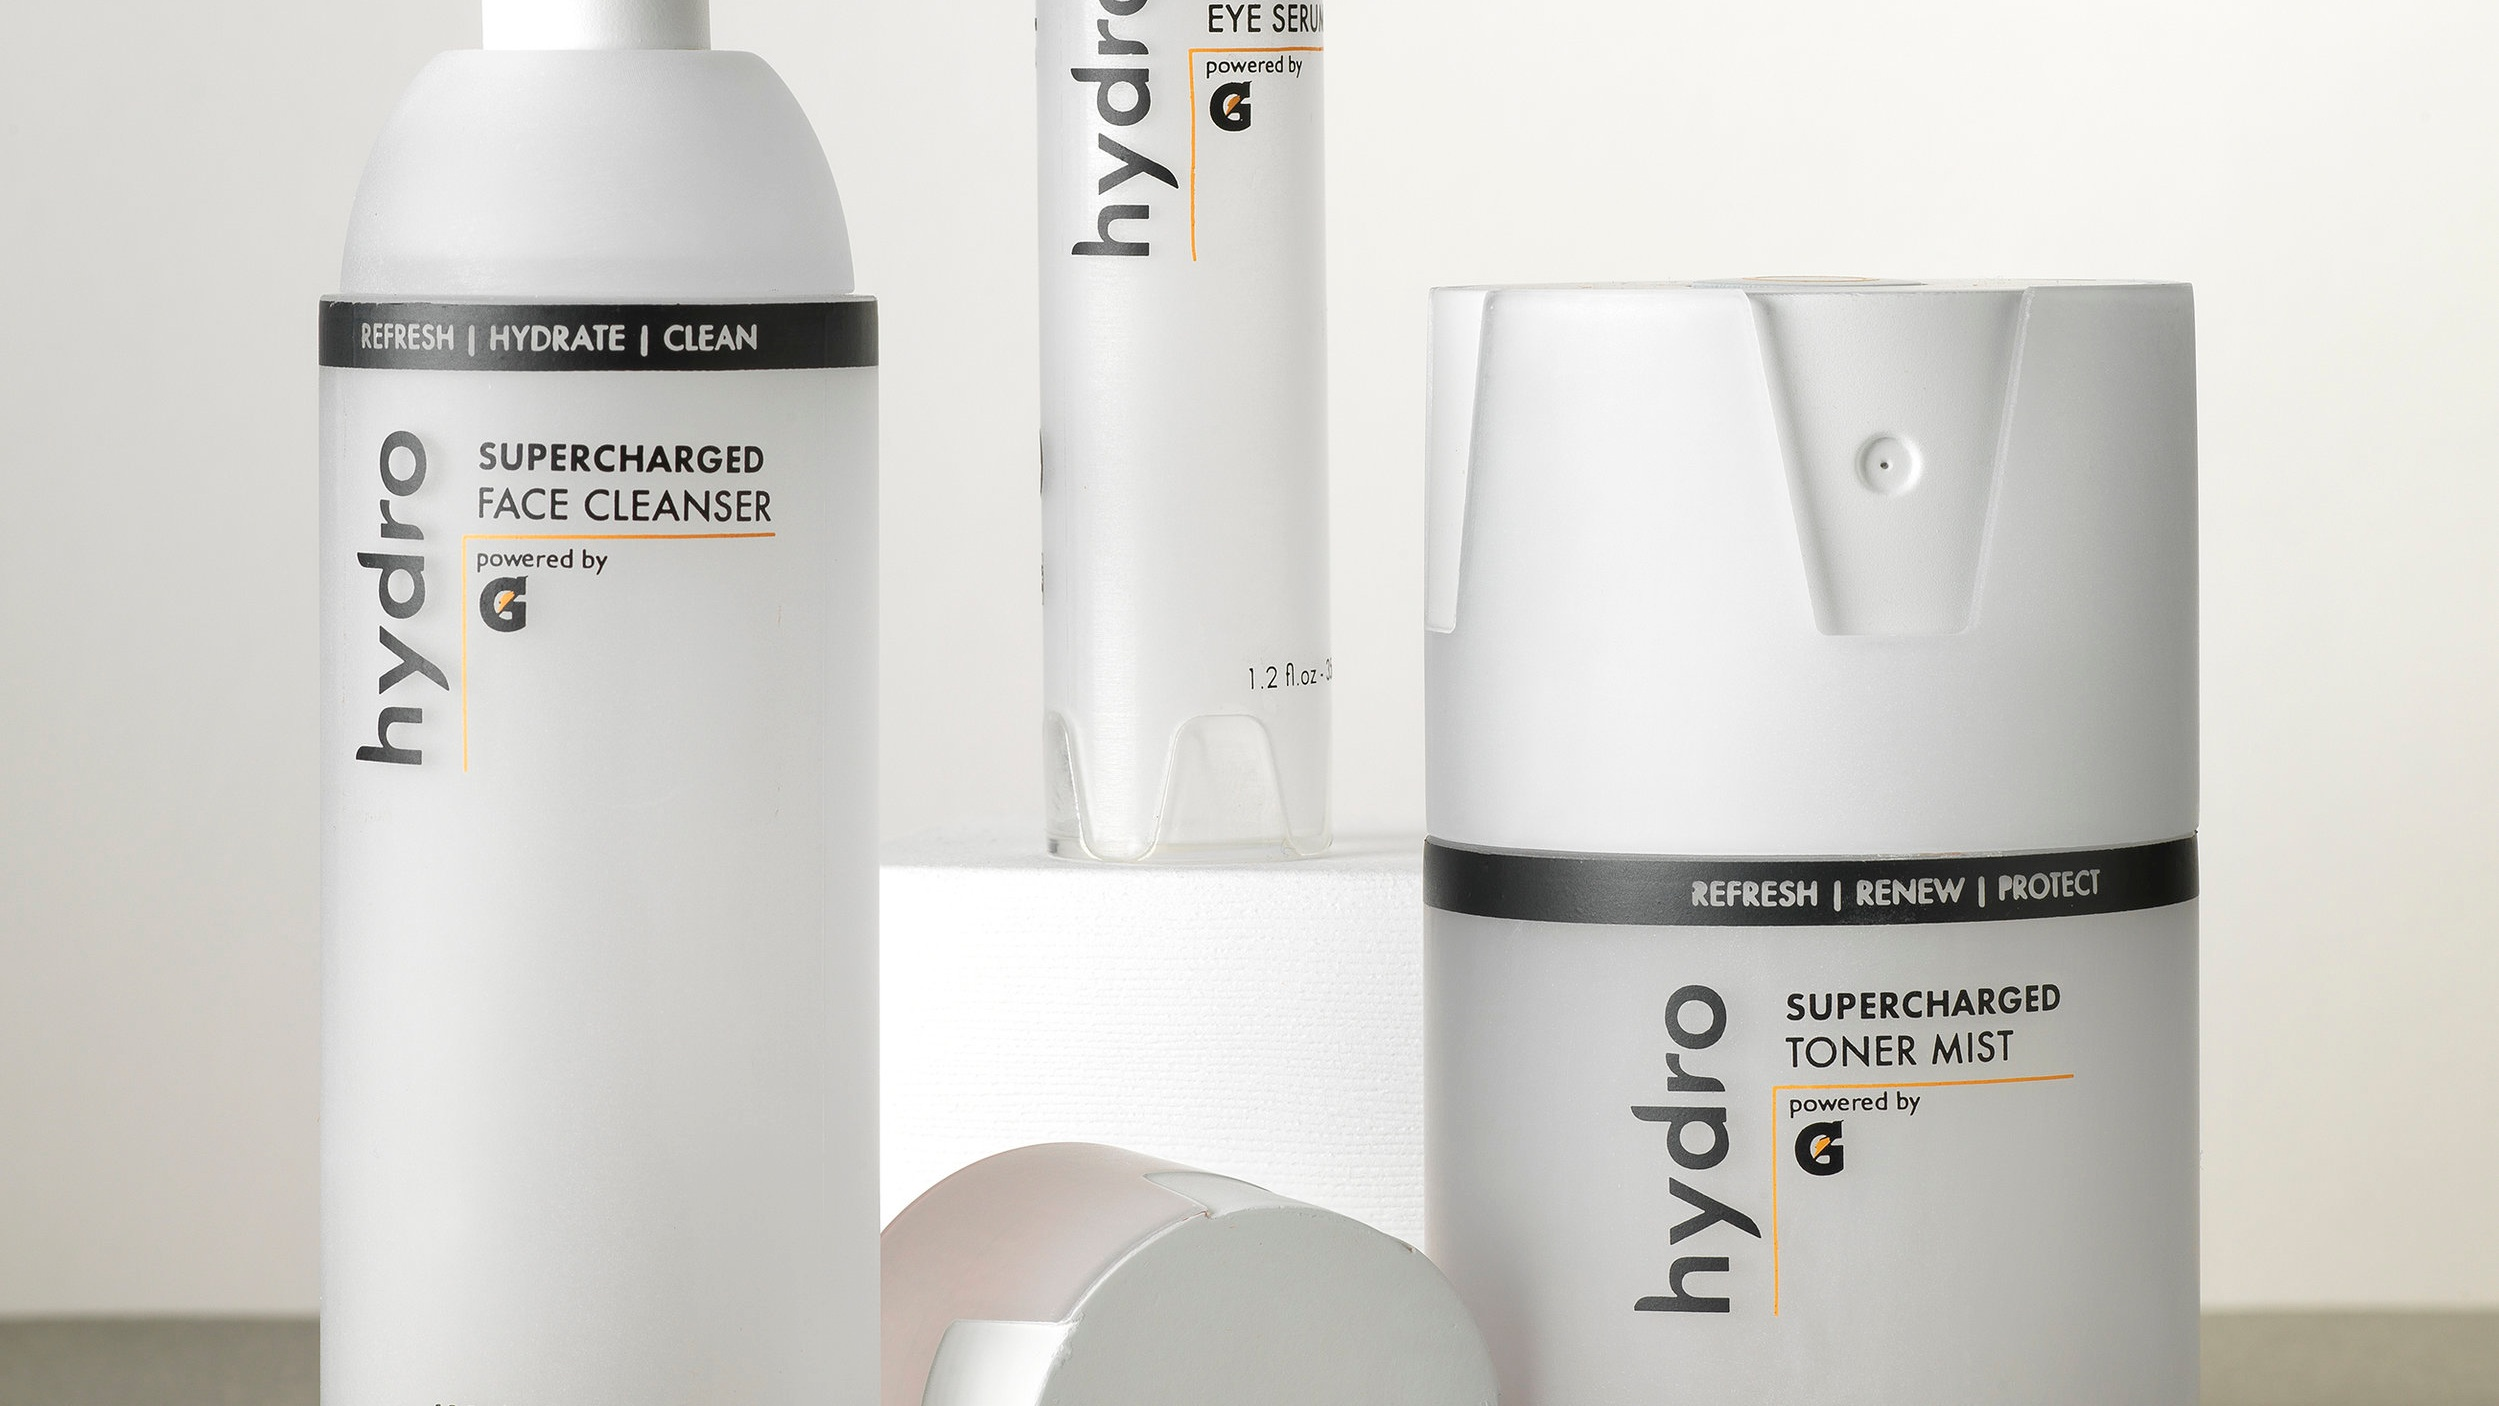 hydro premium packaging - Extending a product line for Gatorade to move into premium skincare market.